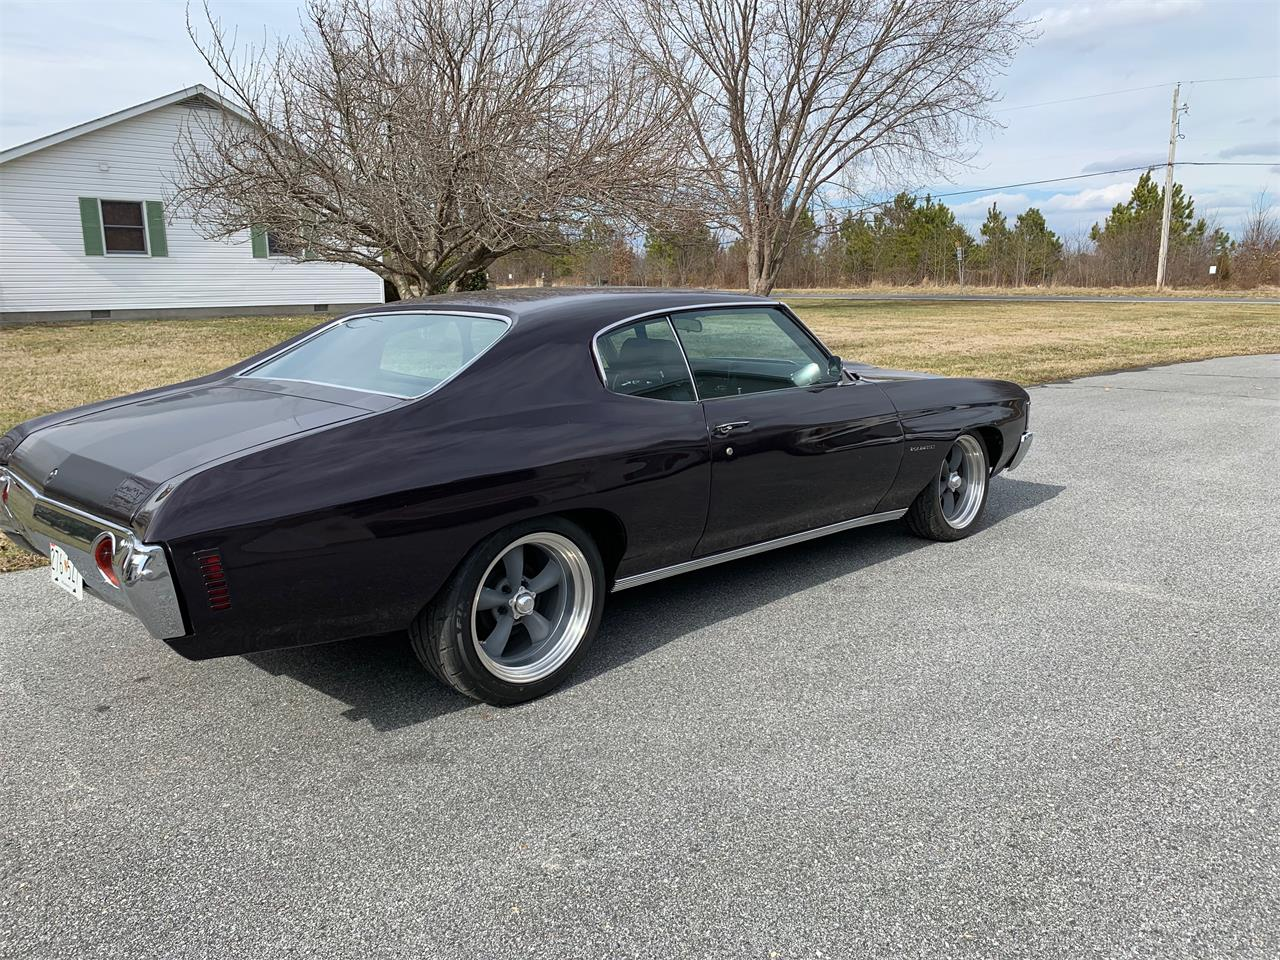 Large Picture of 1972 Chevrolet Chevelle Malibu - $27,500.00 Offered by a Private Seller - QK1N